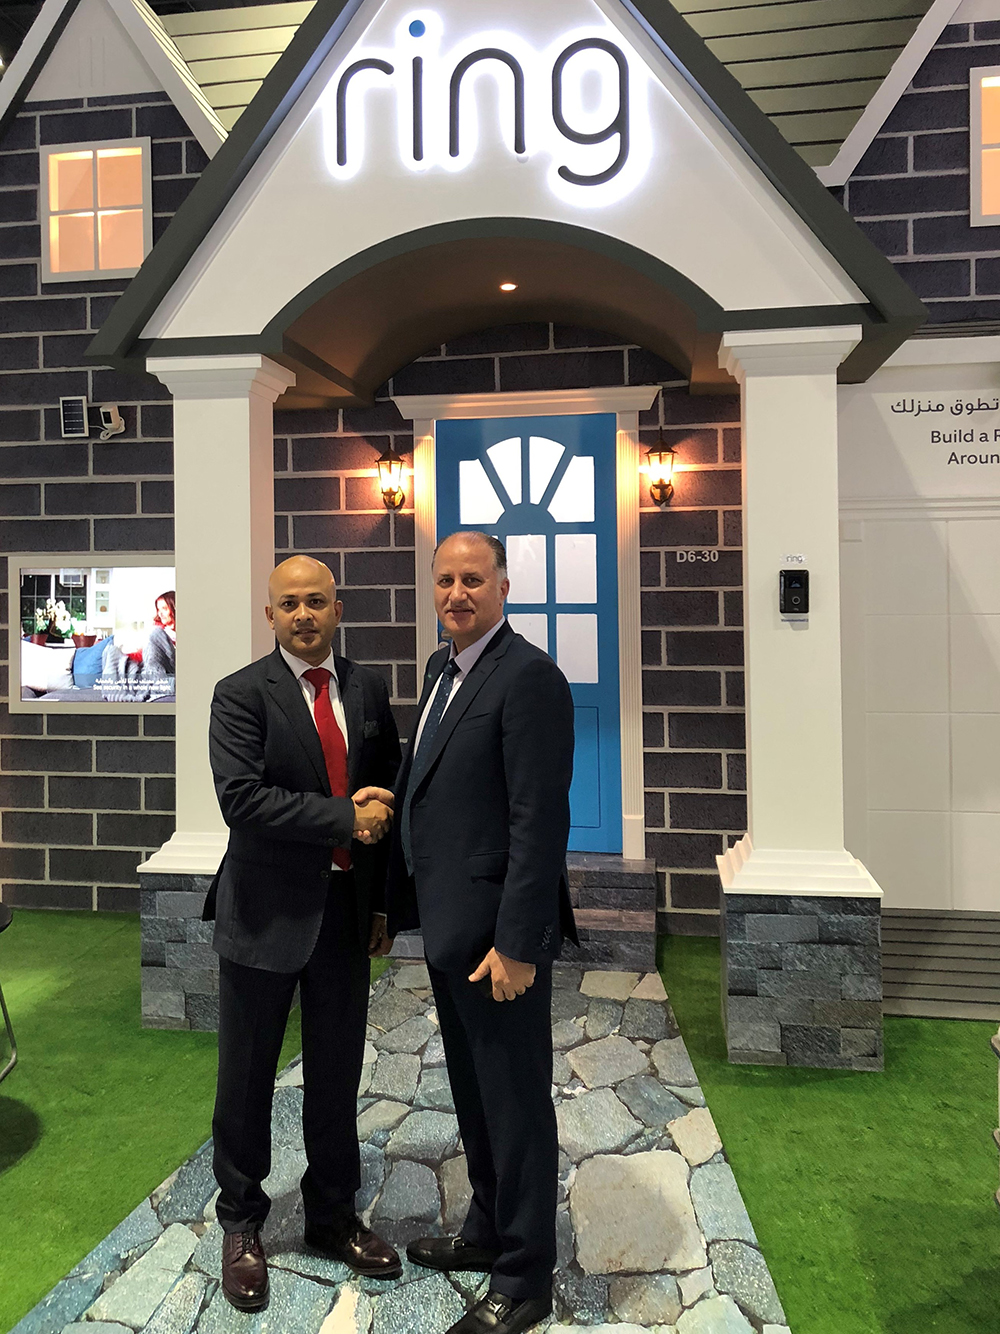 Ring partners with PRO TECHnology to make homes safer in Gulf region